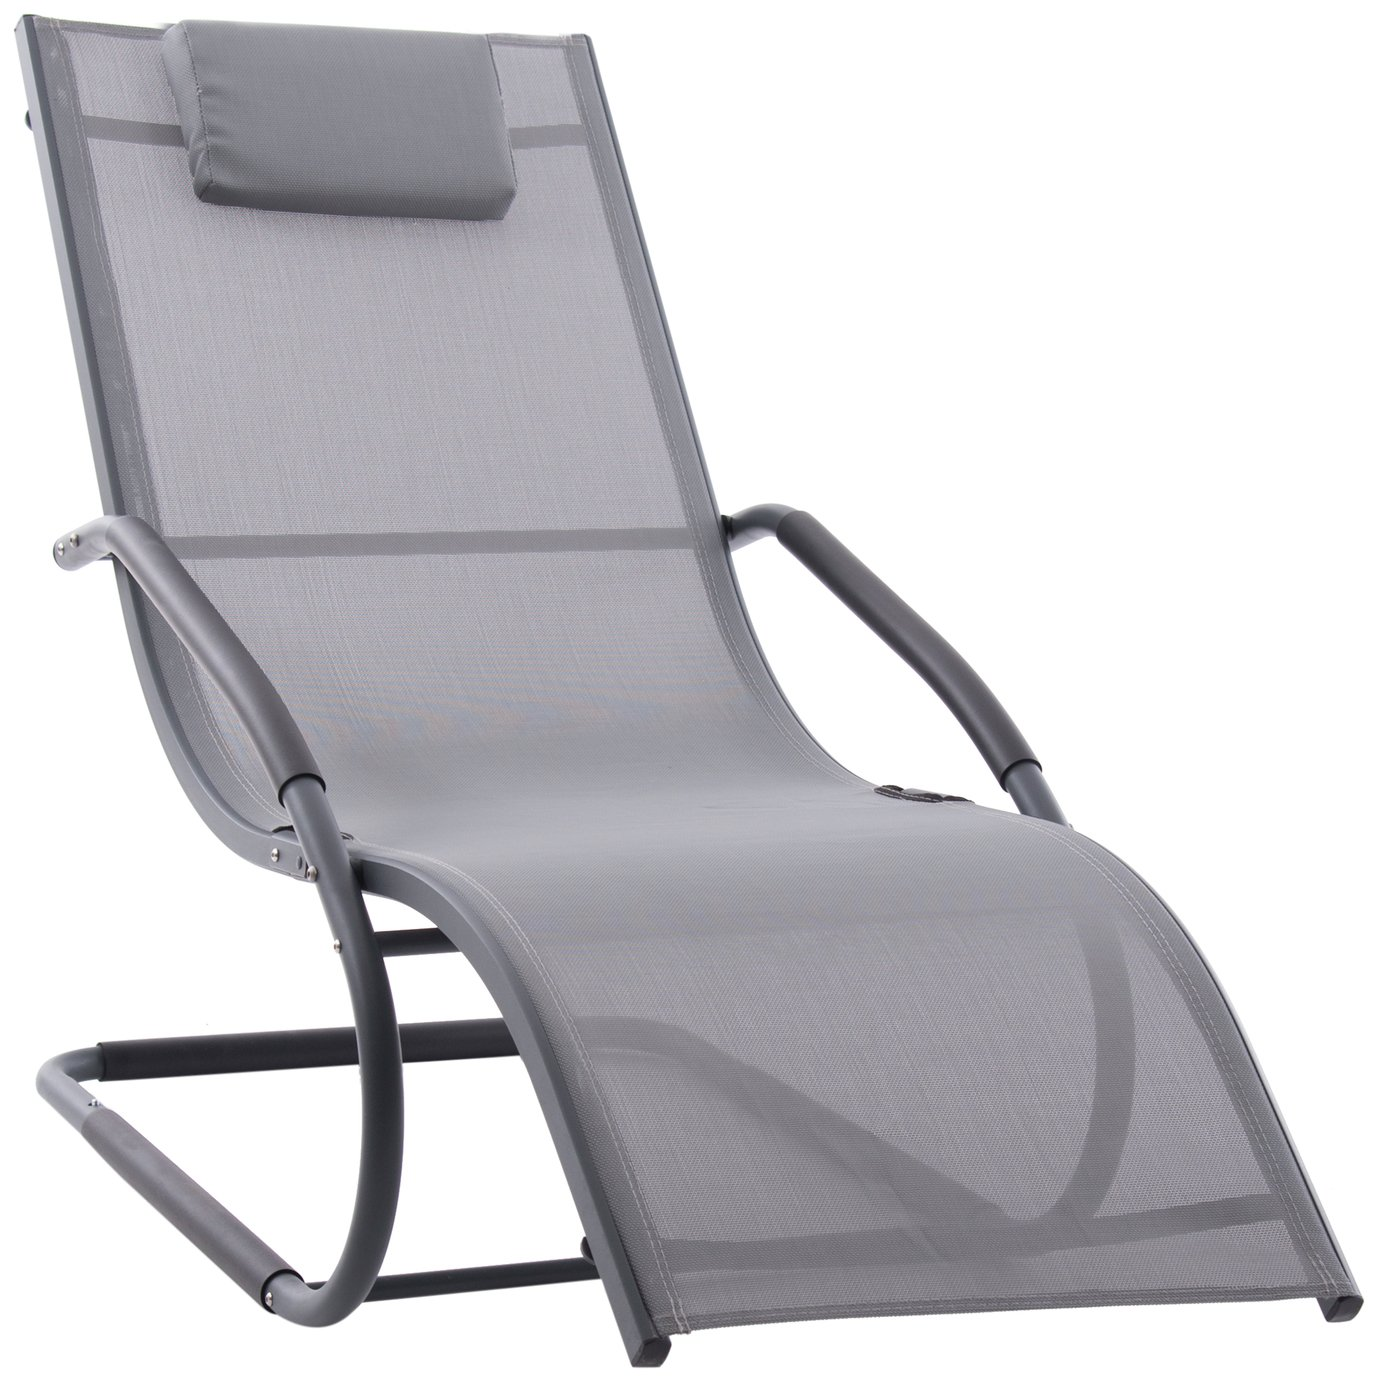 Vivere Wave Metal Sun Lounger - Grey on Matte Black Best Price, Cheapest Prices